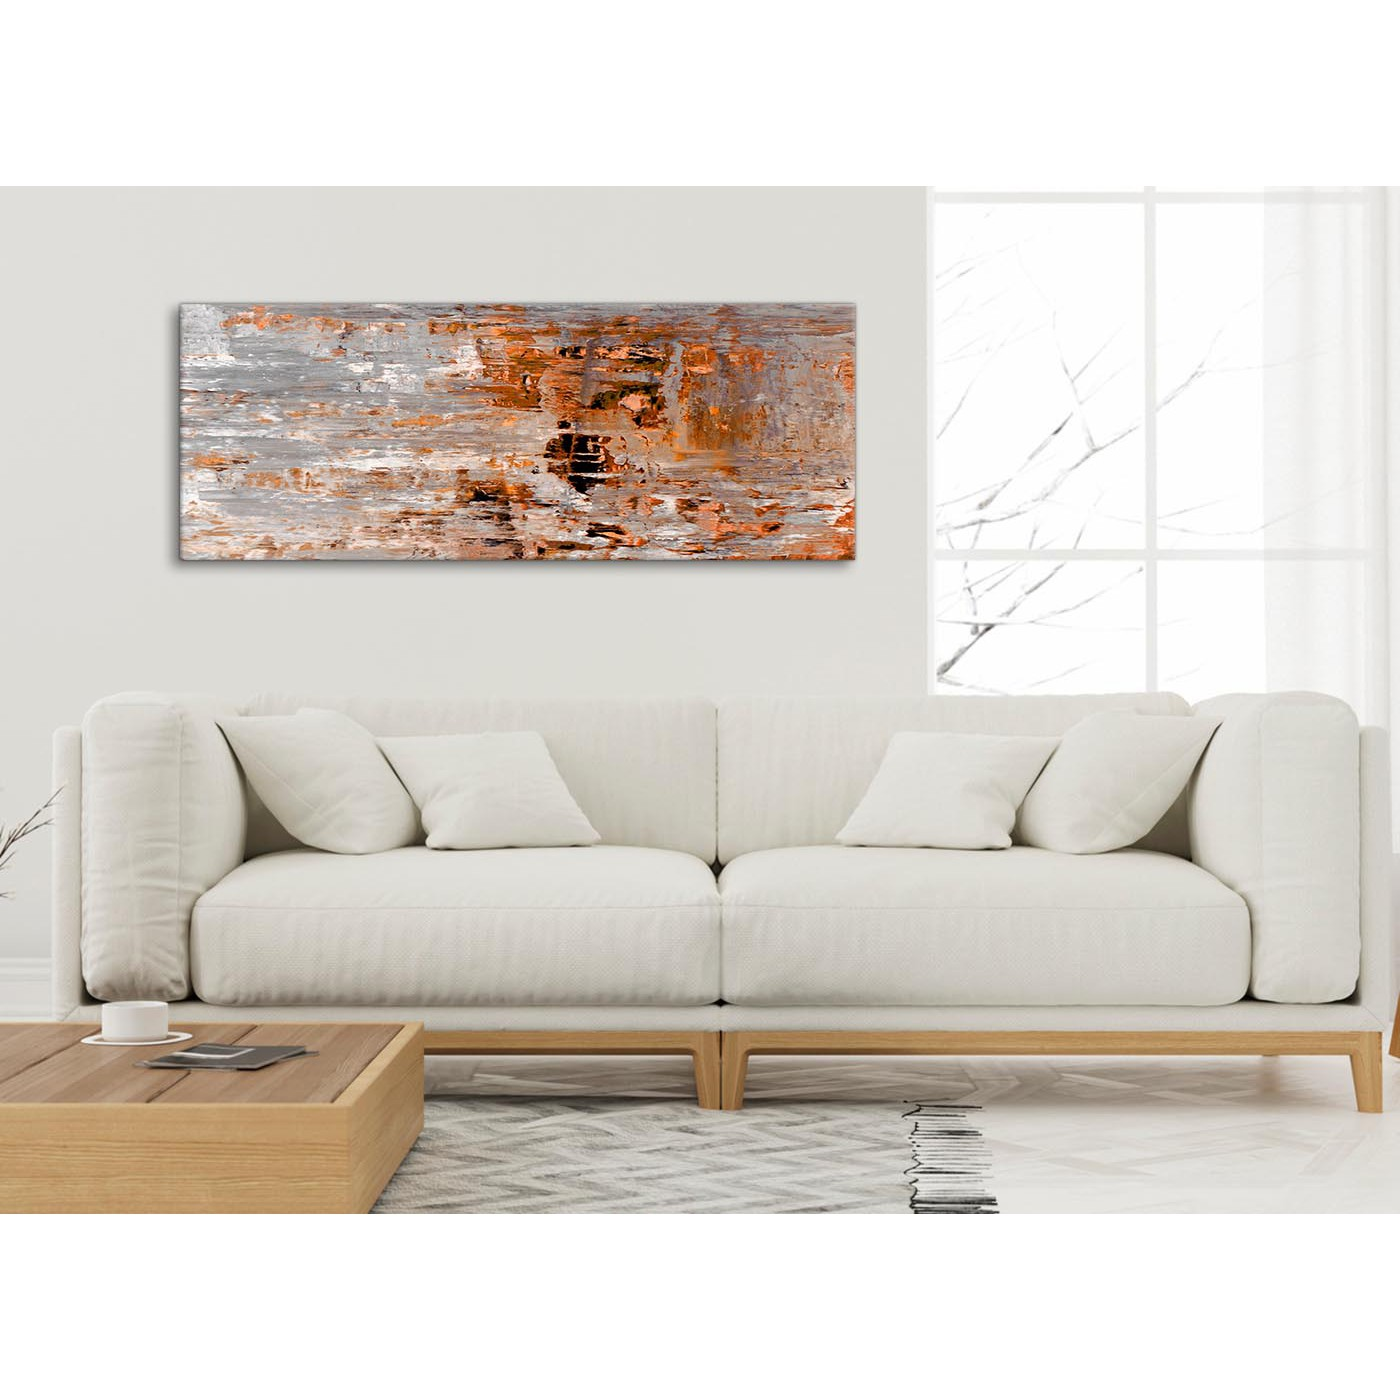 Burnt orange grey painting bedroom canvas wall art - Burnt orange bedroom accessories ...